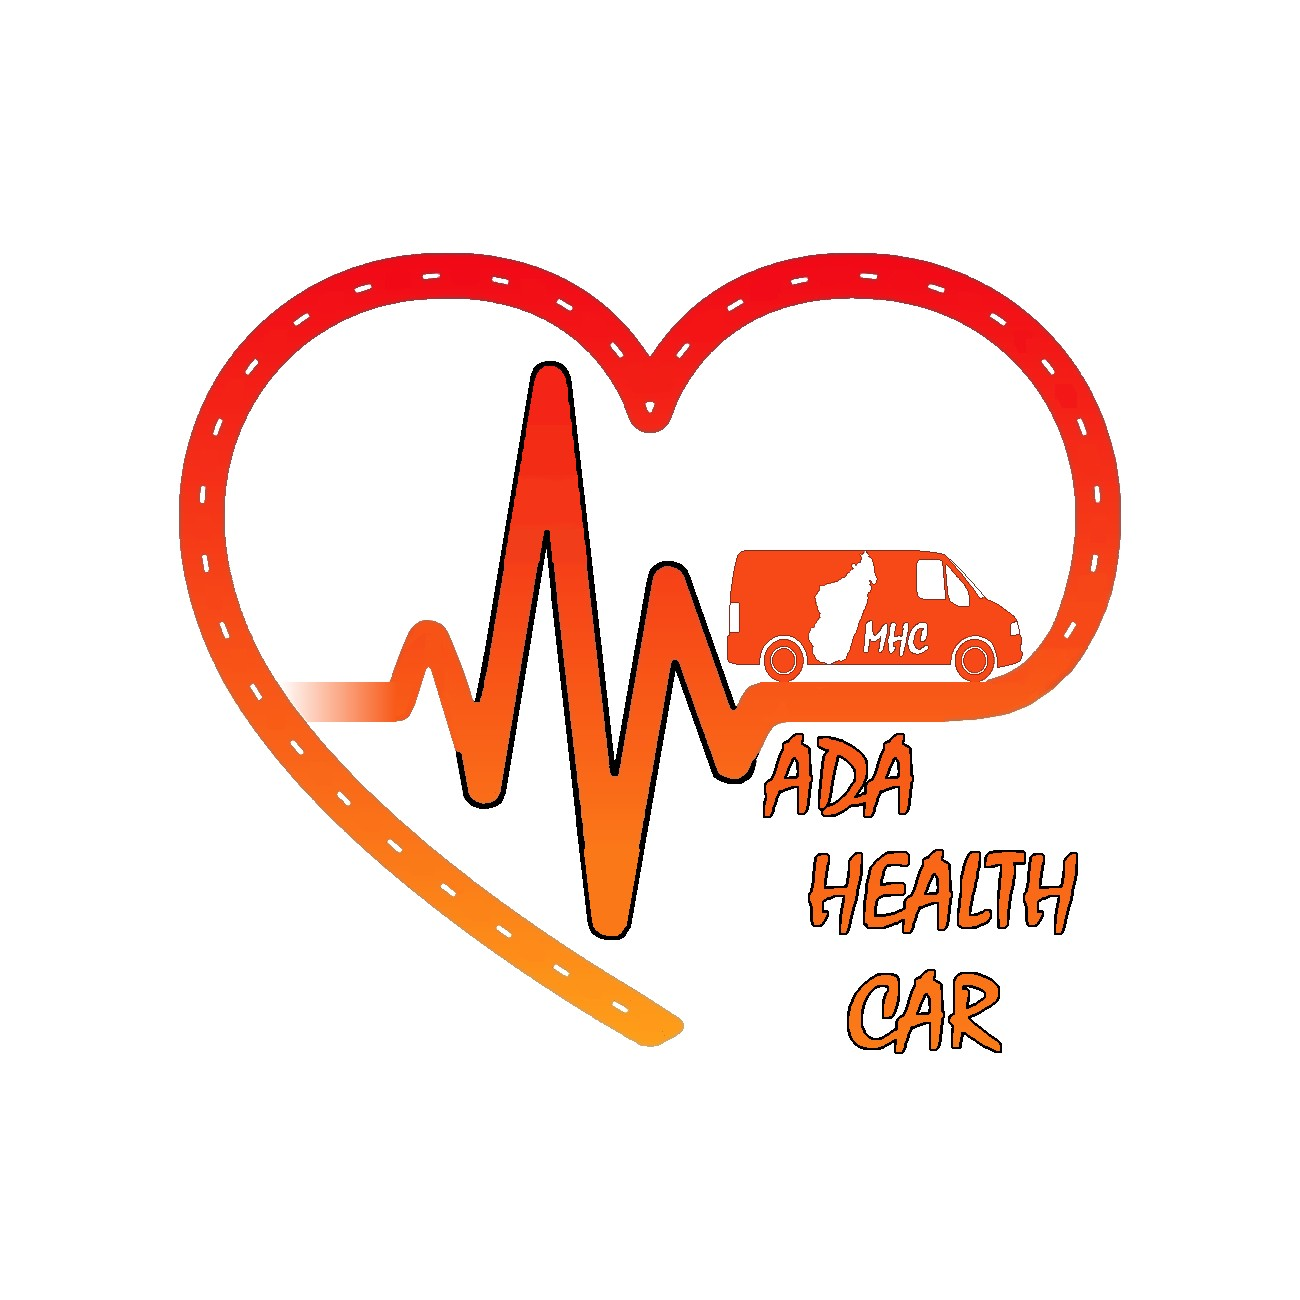 Association - Madahealthcar